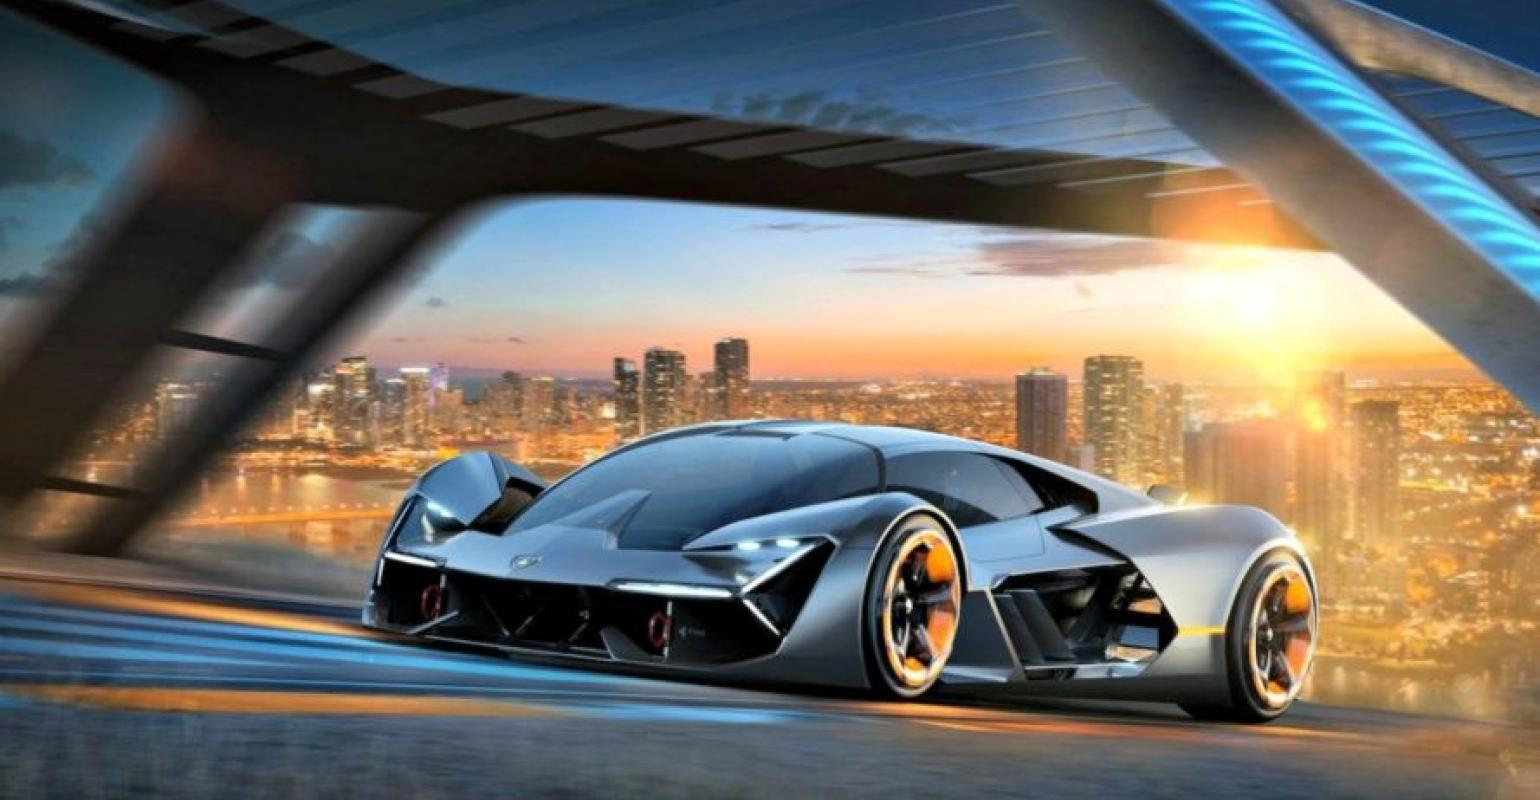 Lamborghini Supercar Maker Mit Conjure Vision Of Future Wardsauto